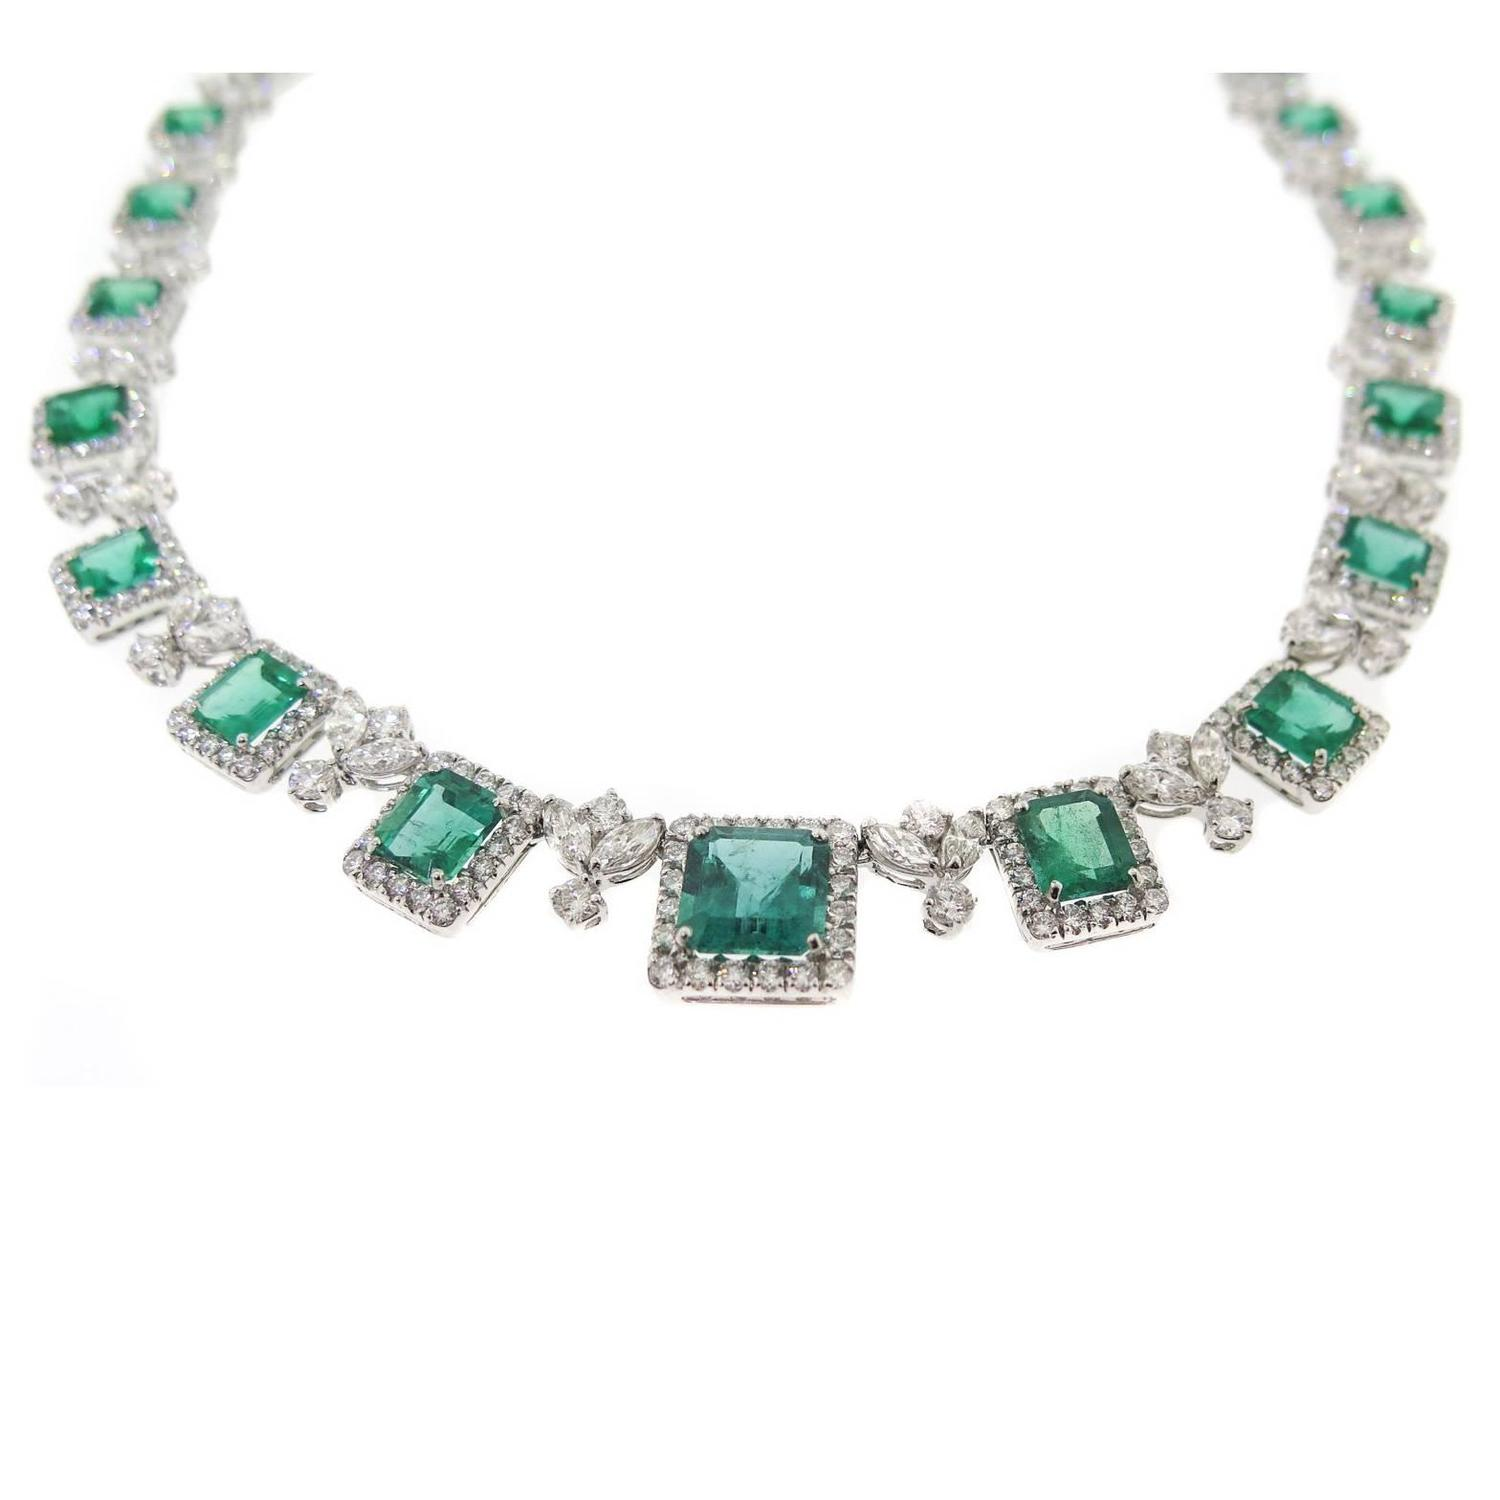 Emerald Diamond Platinum Necklace For Sale at 1stdibs